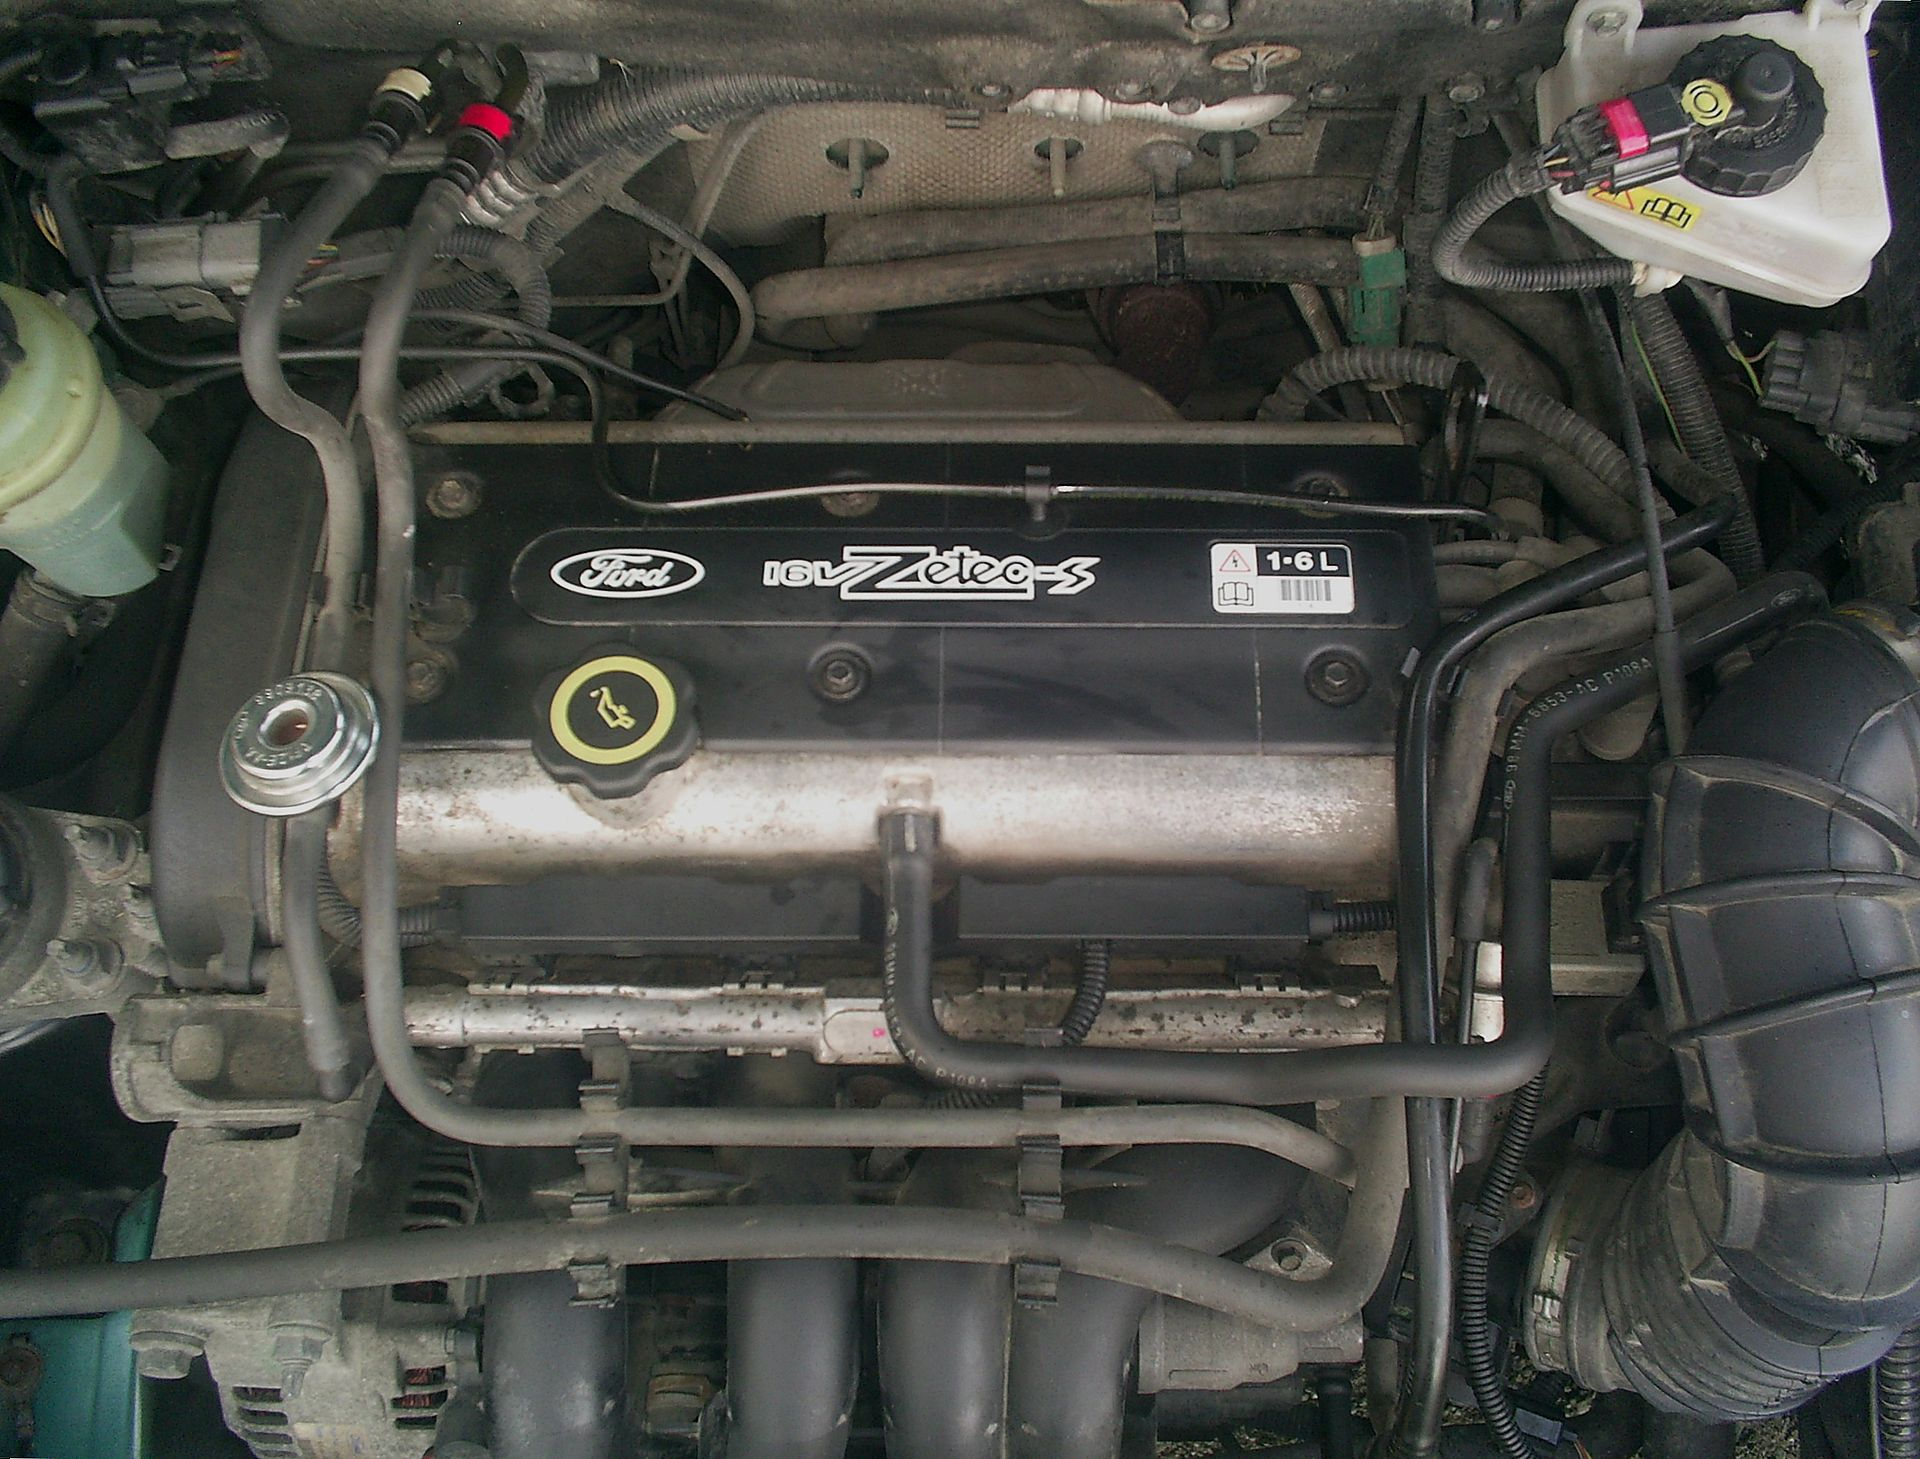 Ford Fiesta 1.6 Tdci Engine Problems Ford Zetec Engine Wikipedia